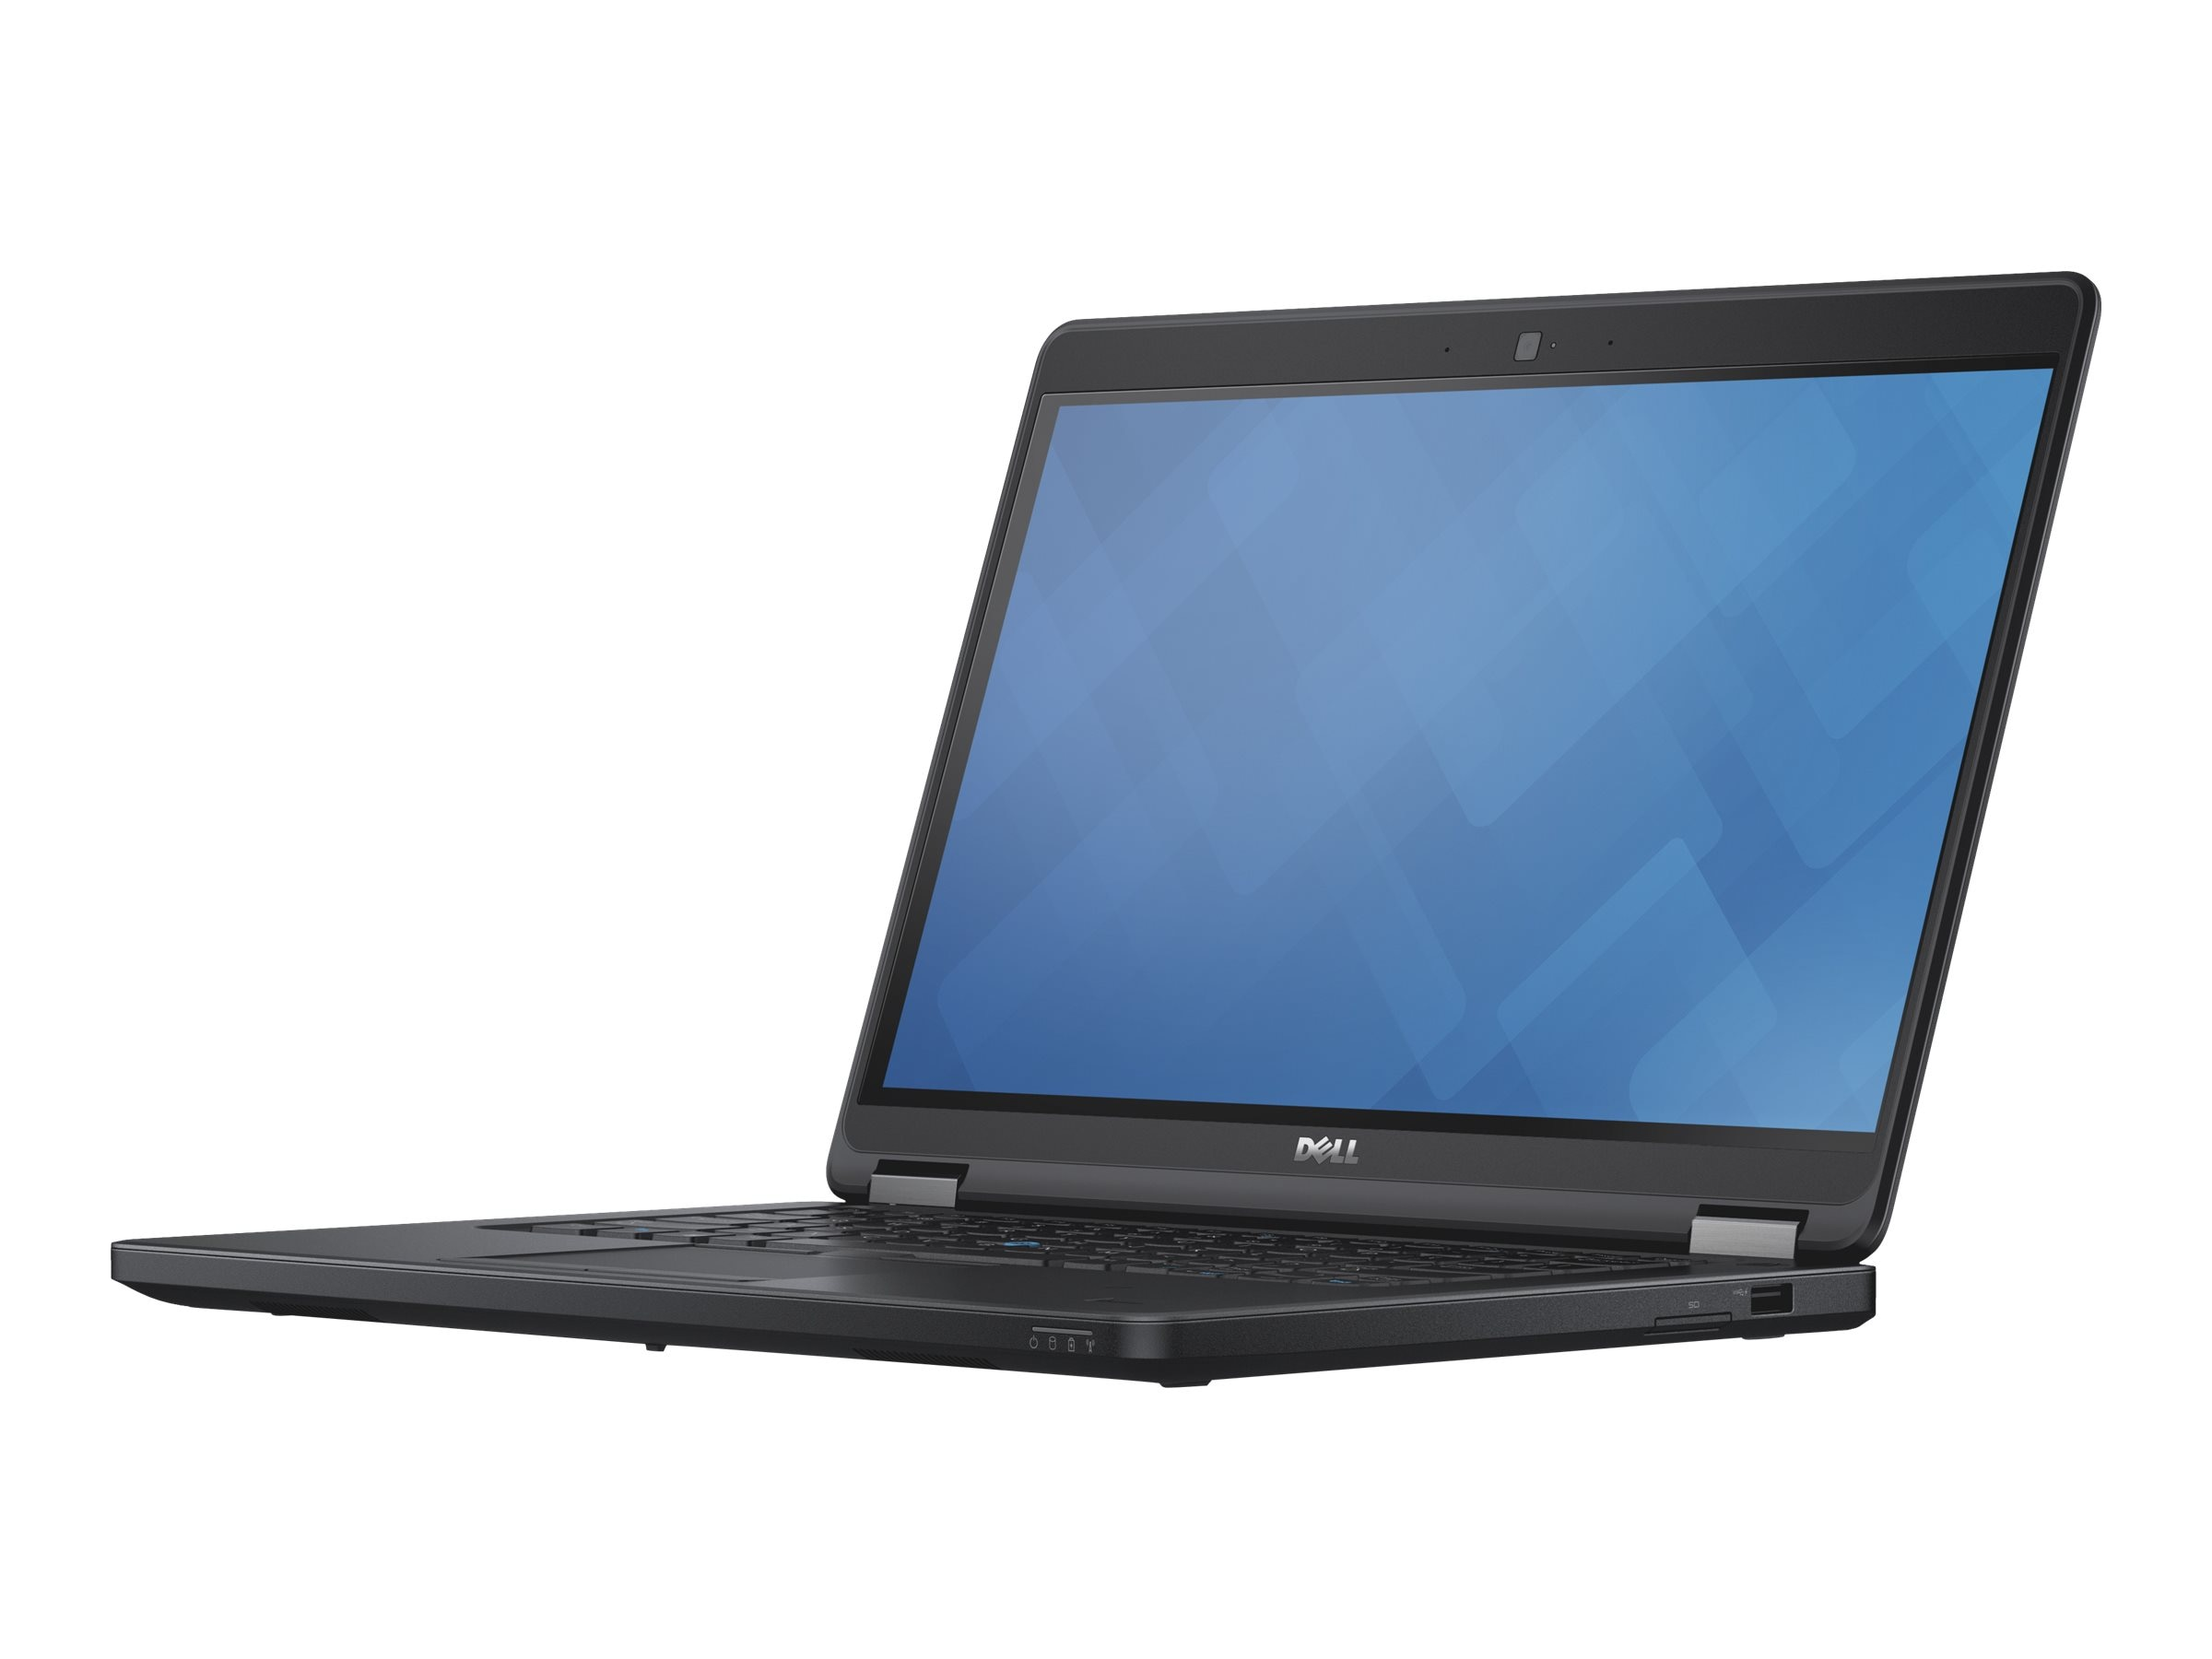 Dell Latitude E5450 2.2GHz Core i5 14in display, GDTDK, 18476912, Notebooks